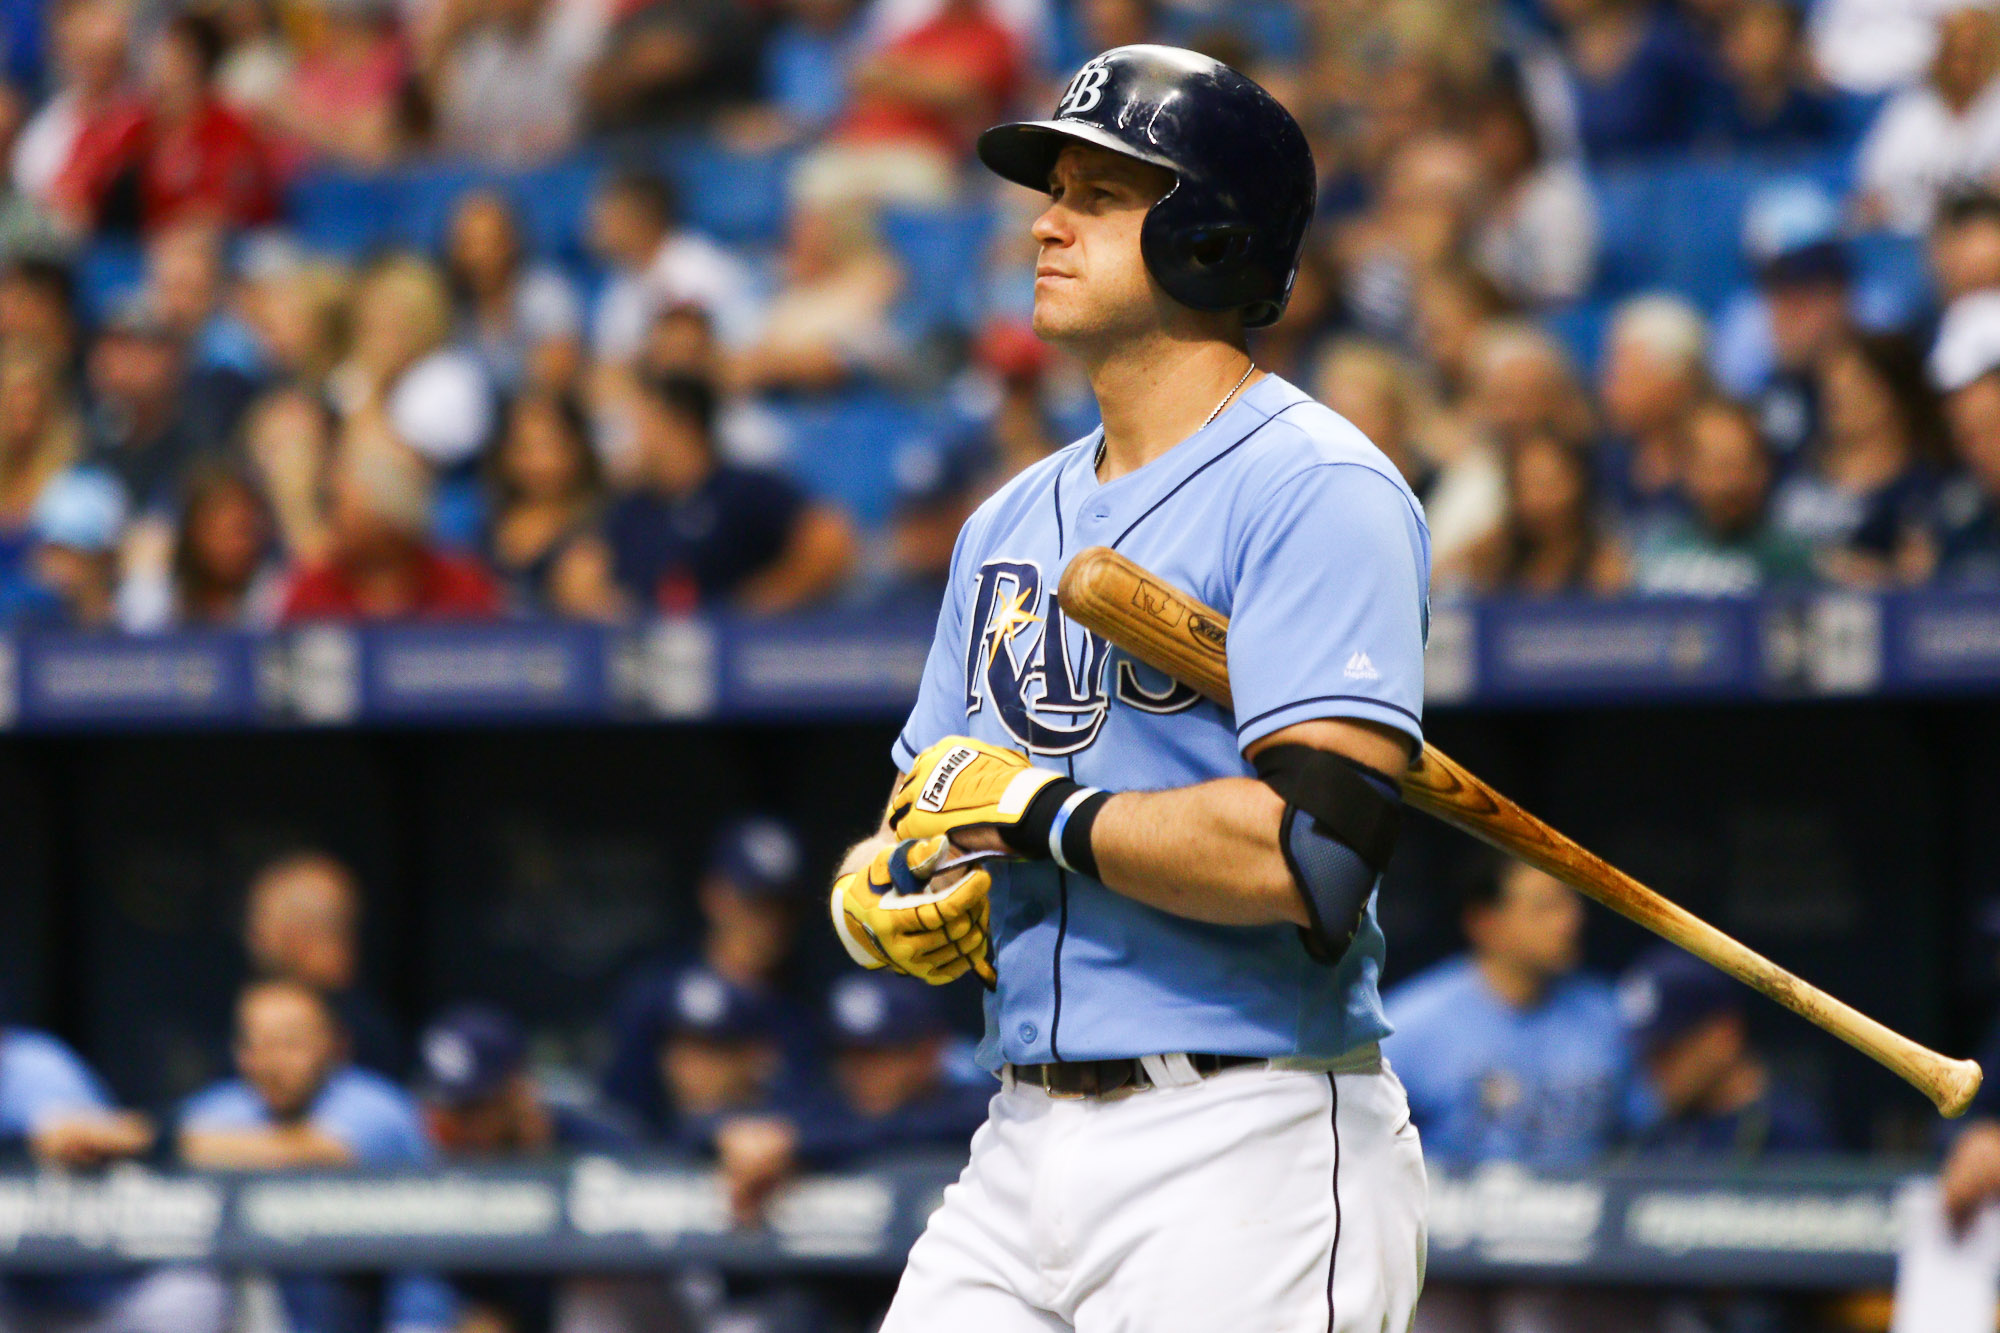 Evan Longoria had two hits, tying for his most ever./ANDREW J. KRAMER